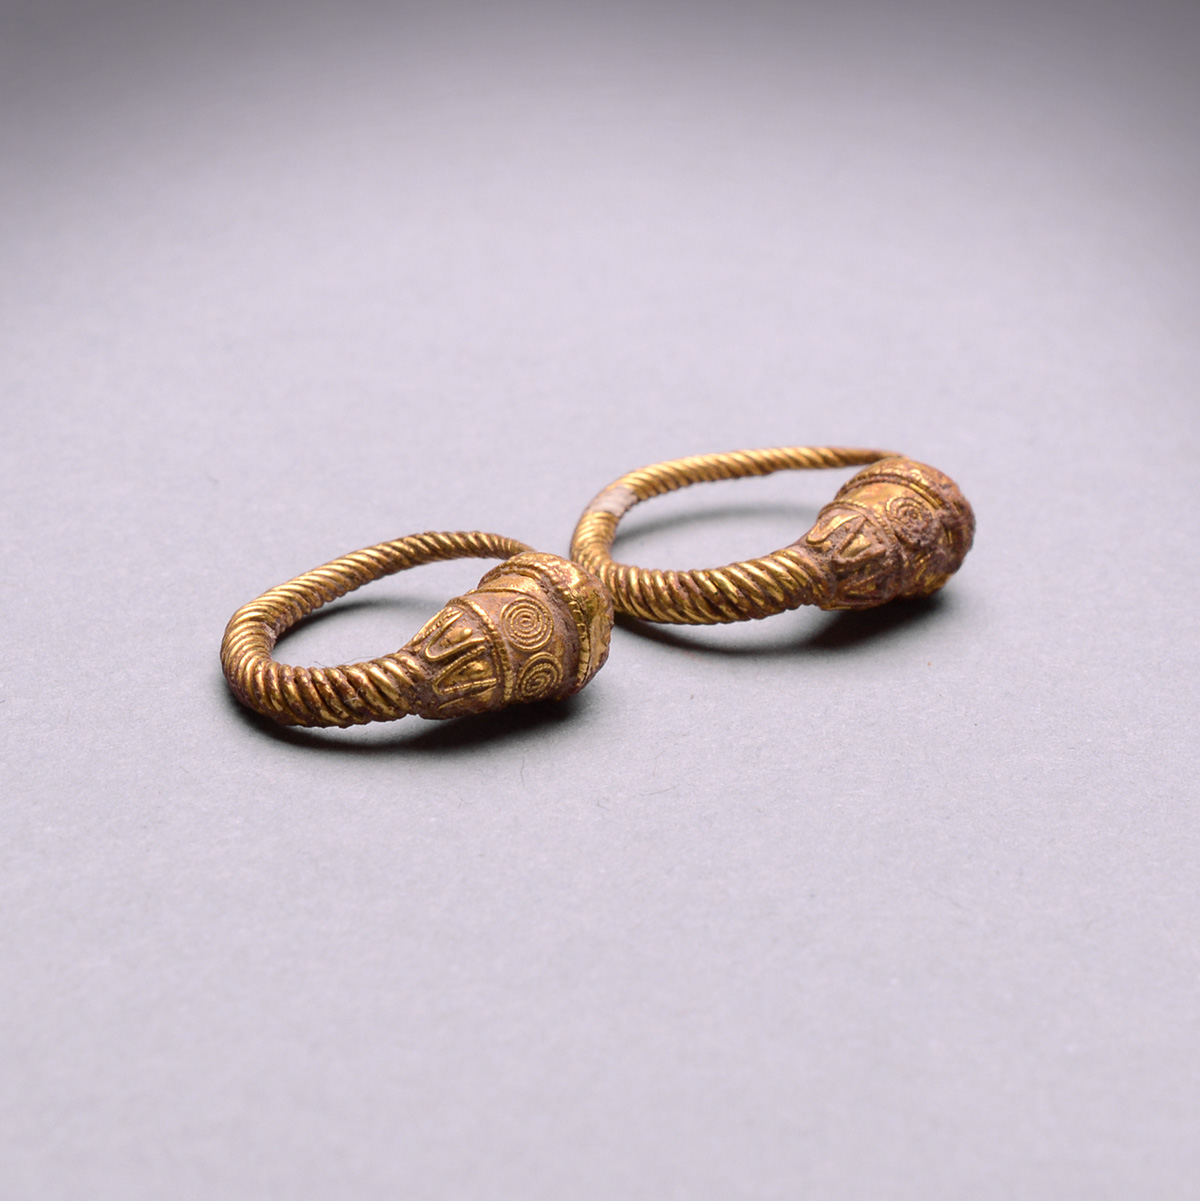 Hellenistic Gold Earrings Adorned with Lion Heads - Barakat